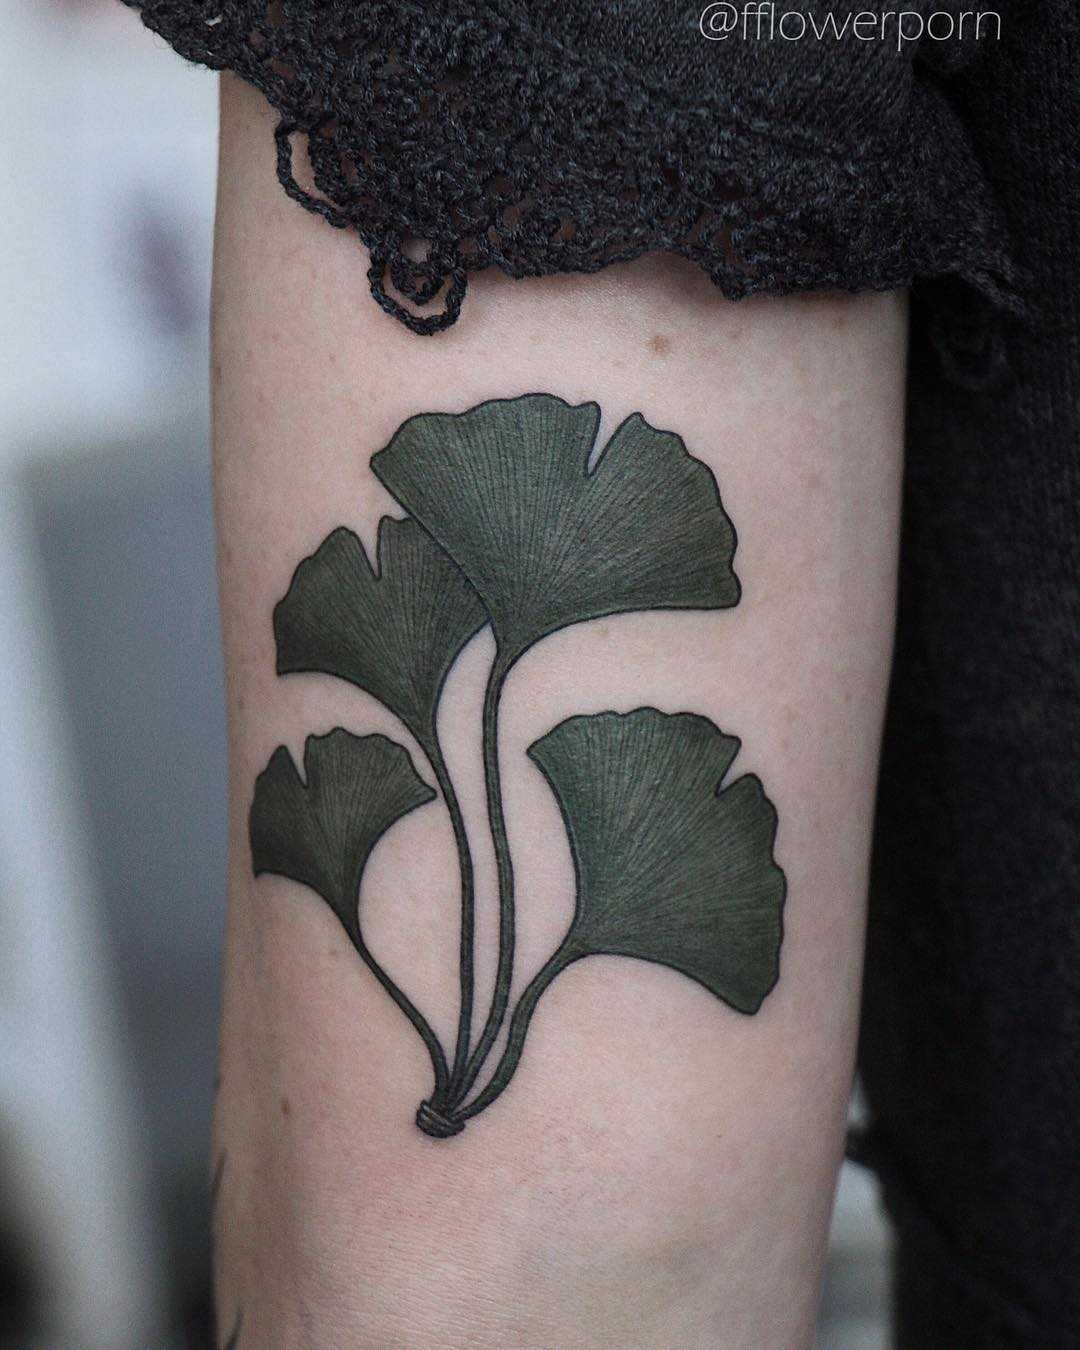 Ginkgo leaves tattoo on the arm